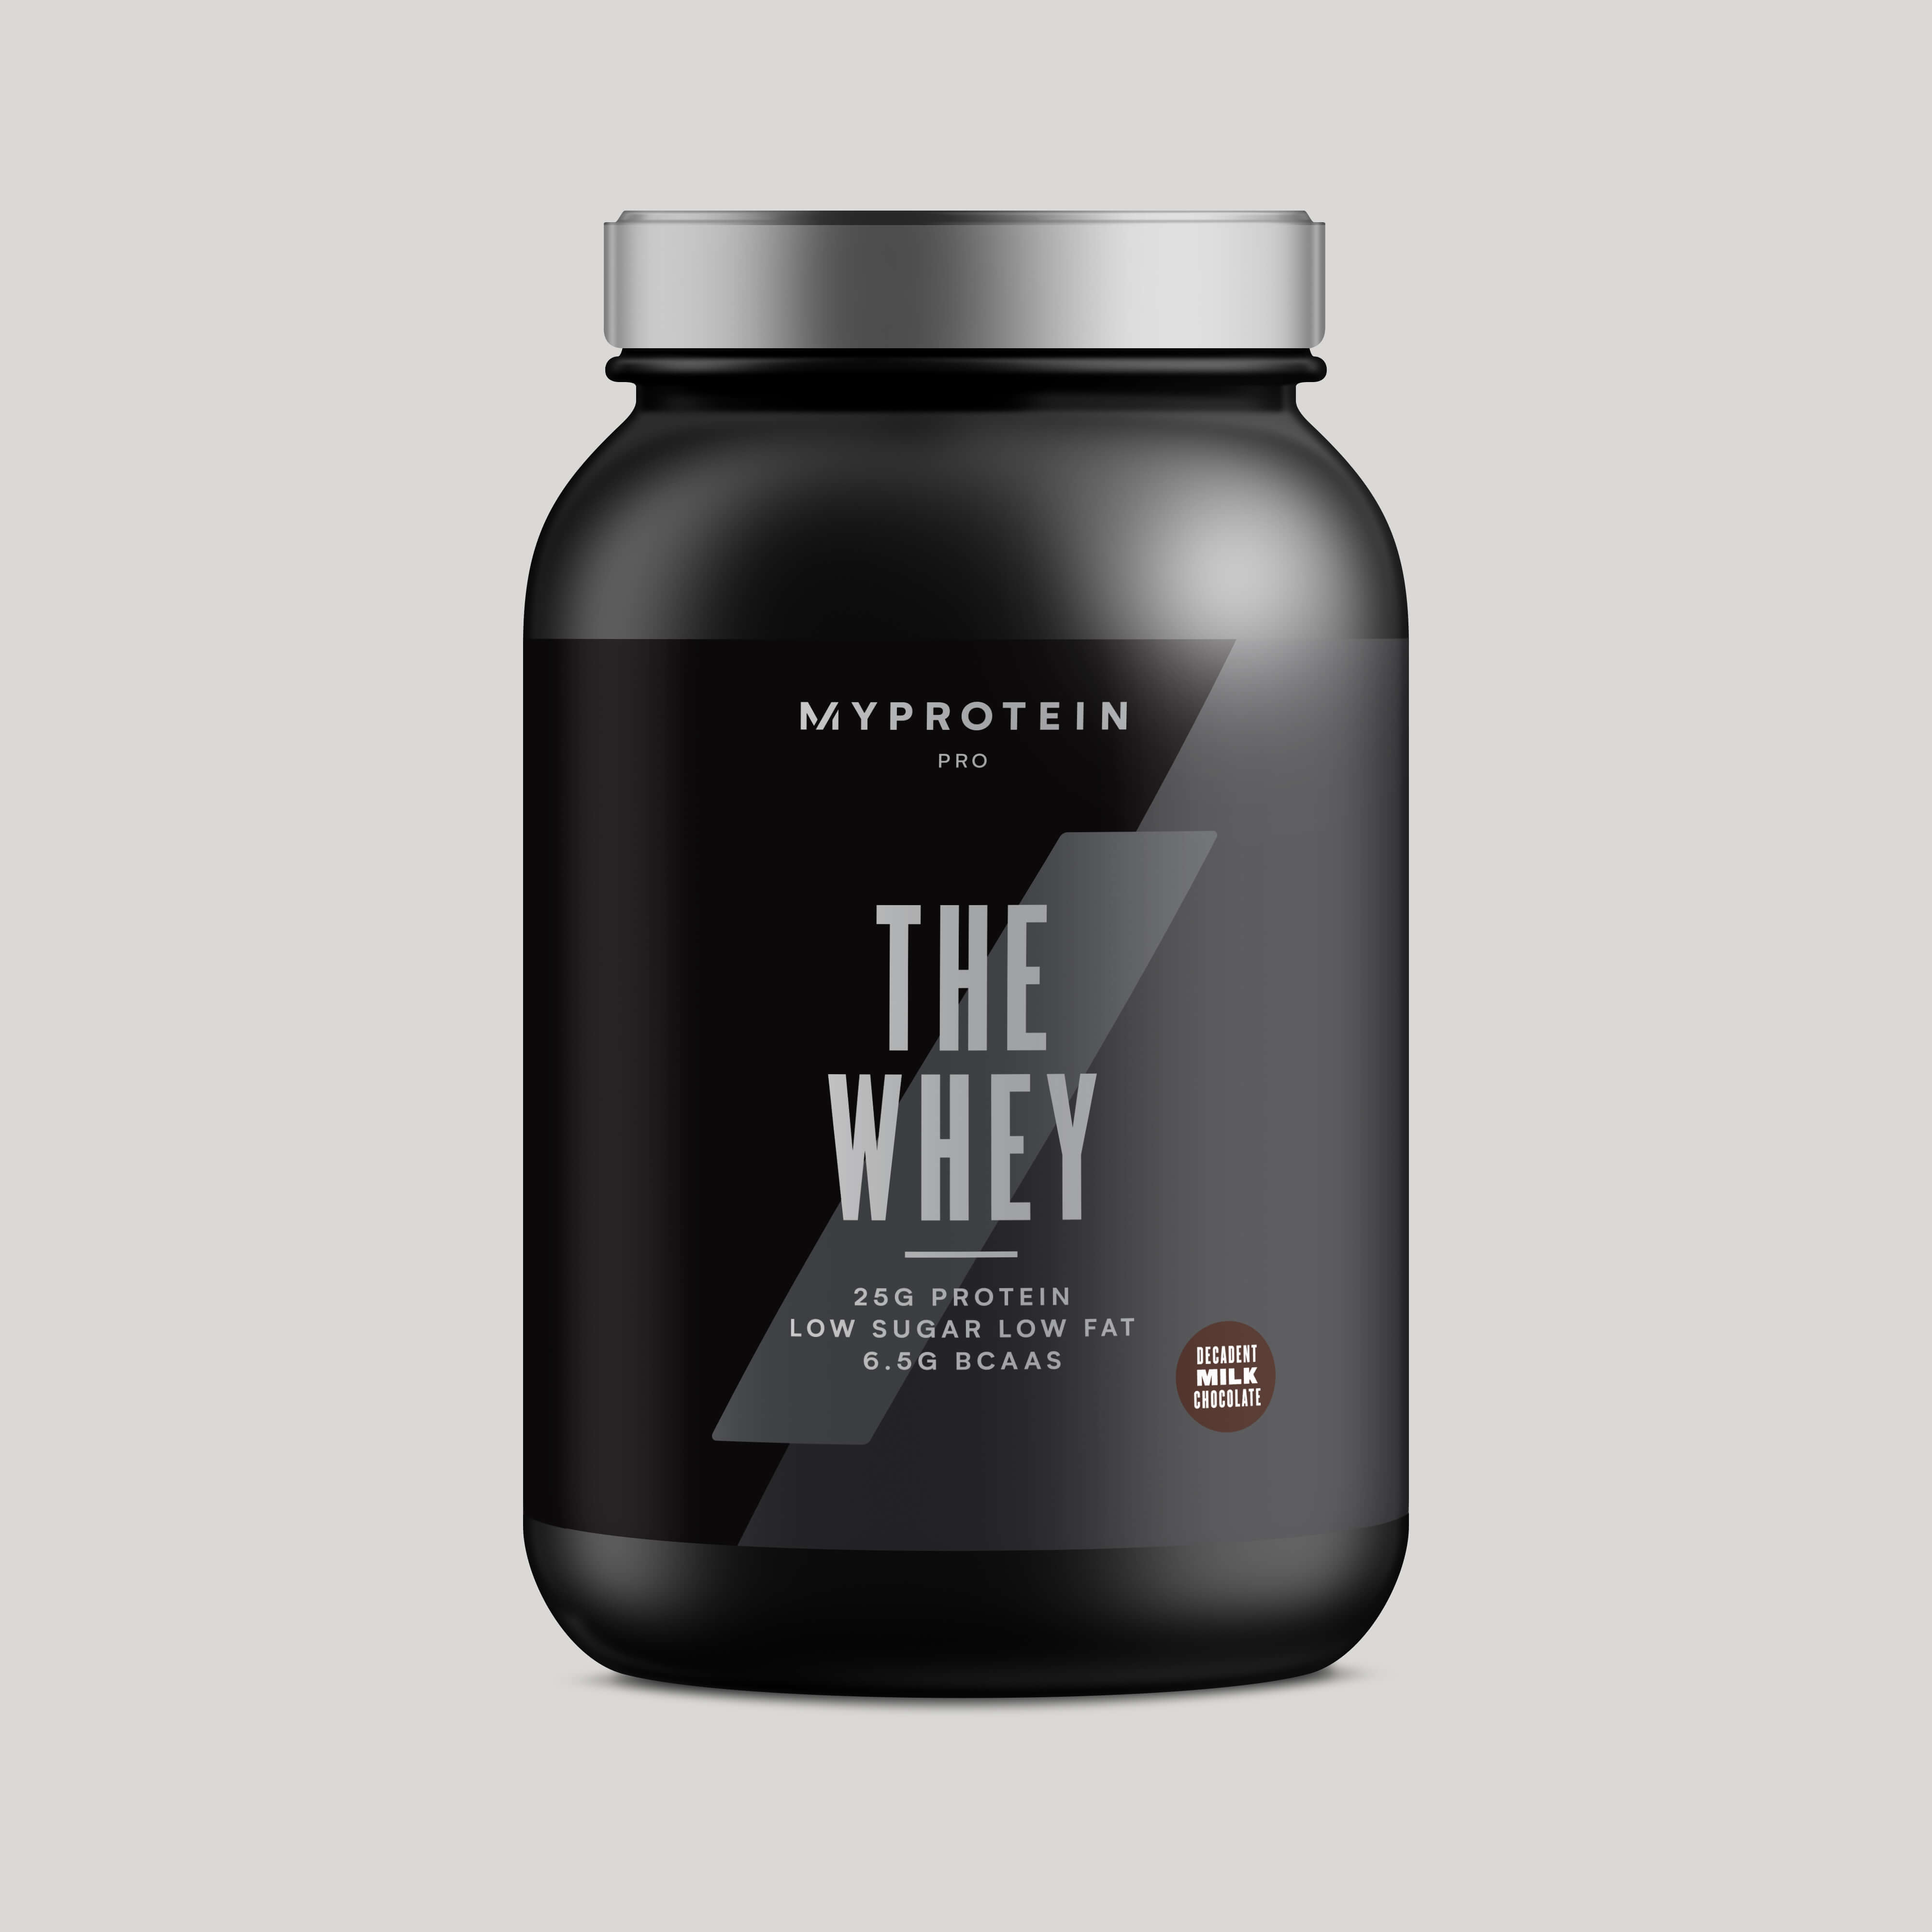 1 DAY DELIVERY My Protein THE Whey ™ 900g Peanut Butter